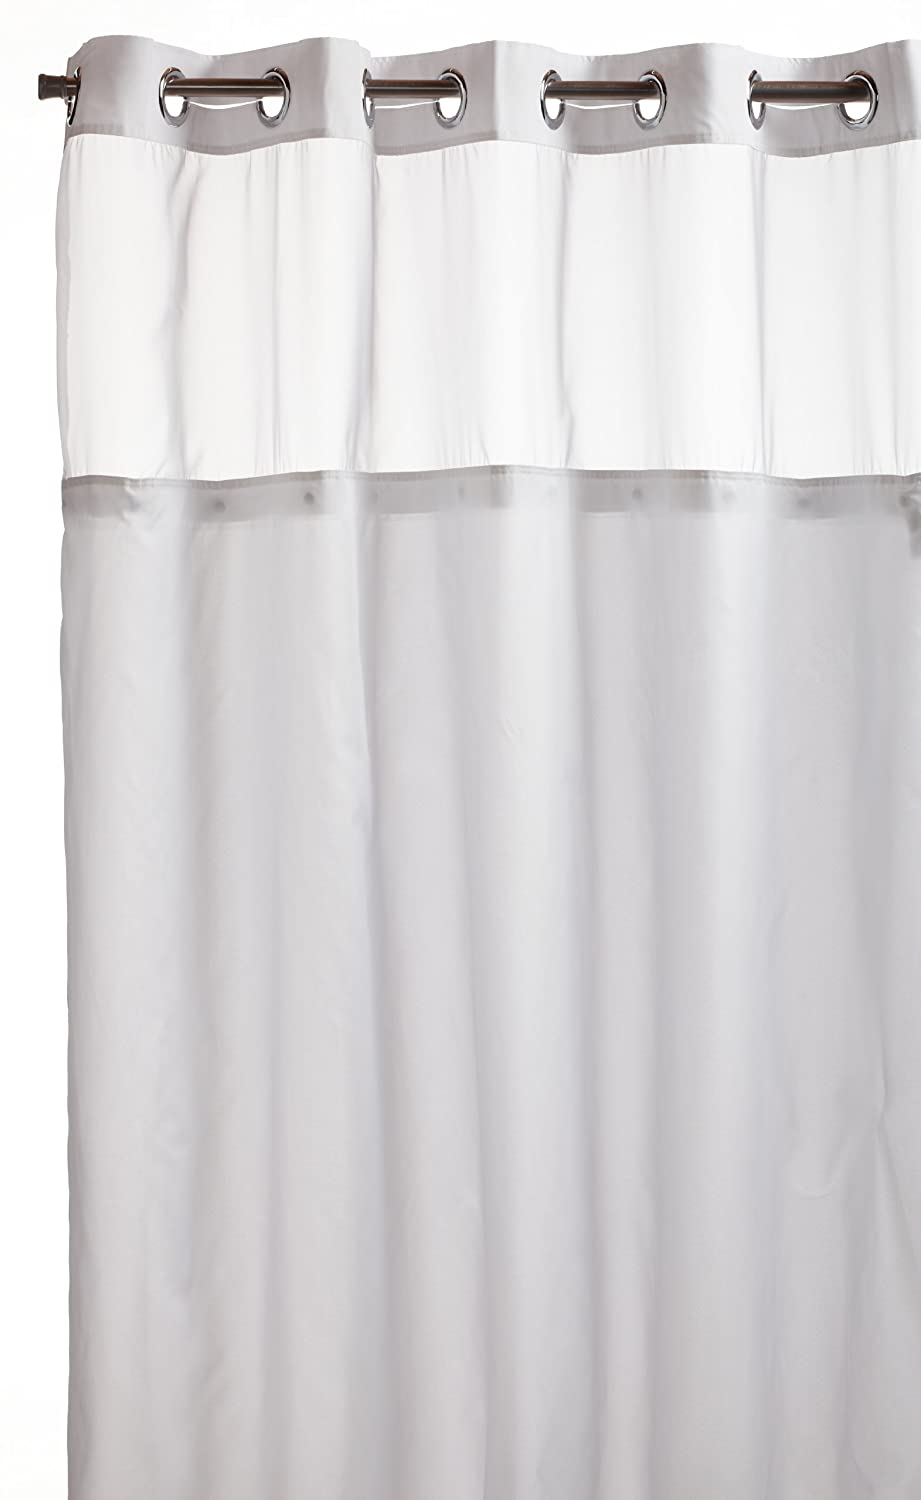 Arcs & Angles Hookless RBH40MY231 Mystery Snap-In Peva Liner Fabric Shower Curtain - White